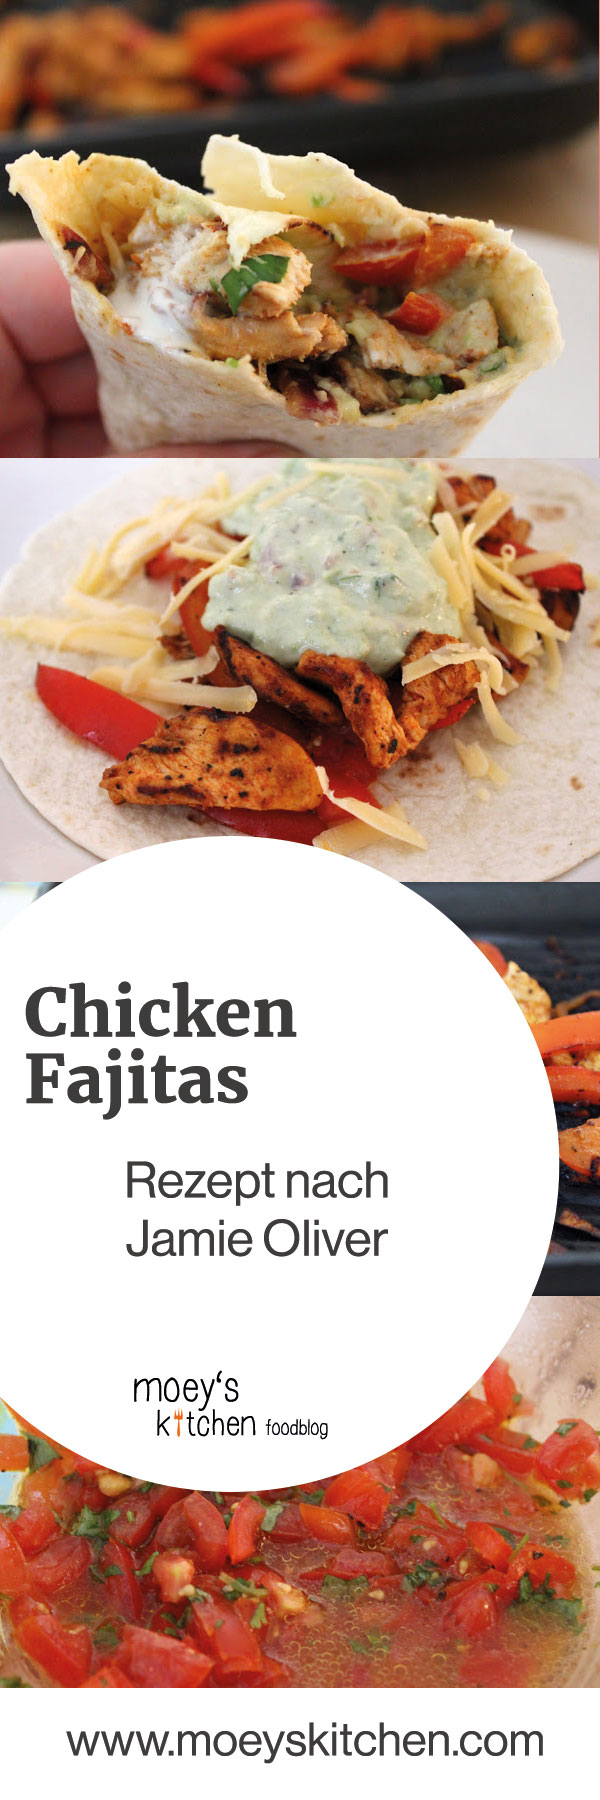 Chicken Fajitas Nach Jamie Oliver Moeys Kitchen Foodblog